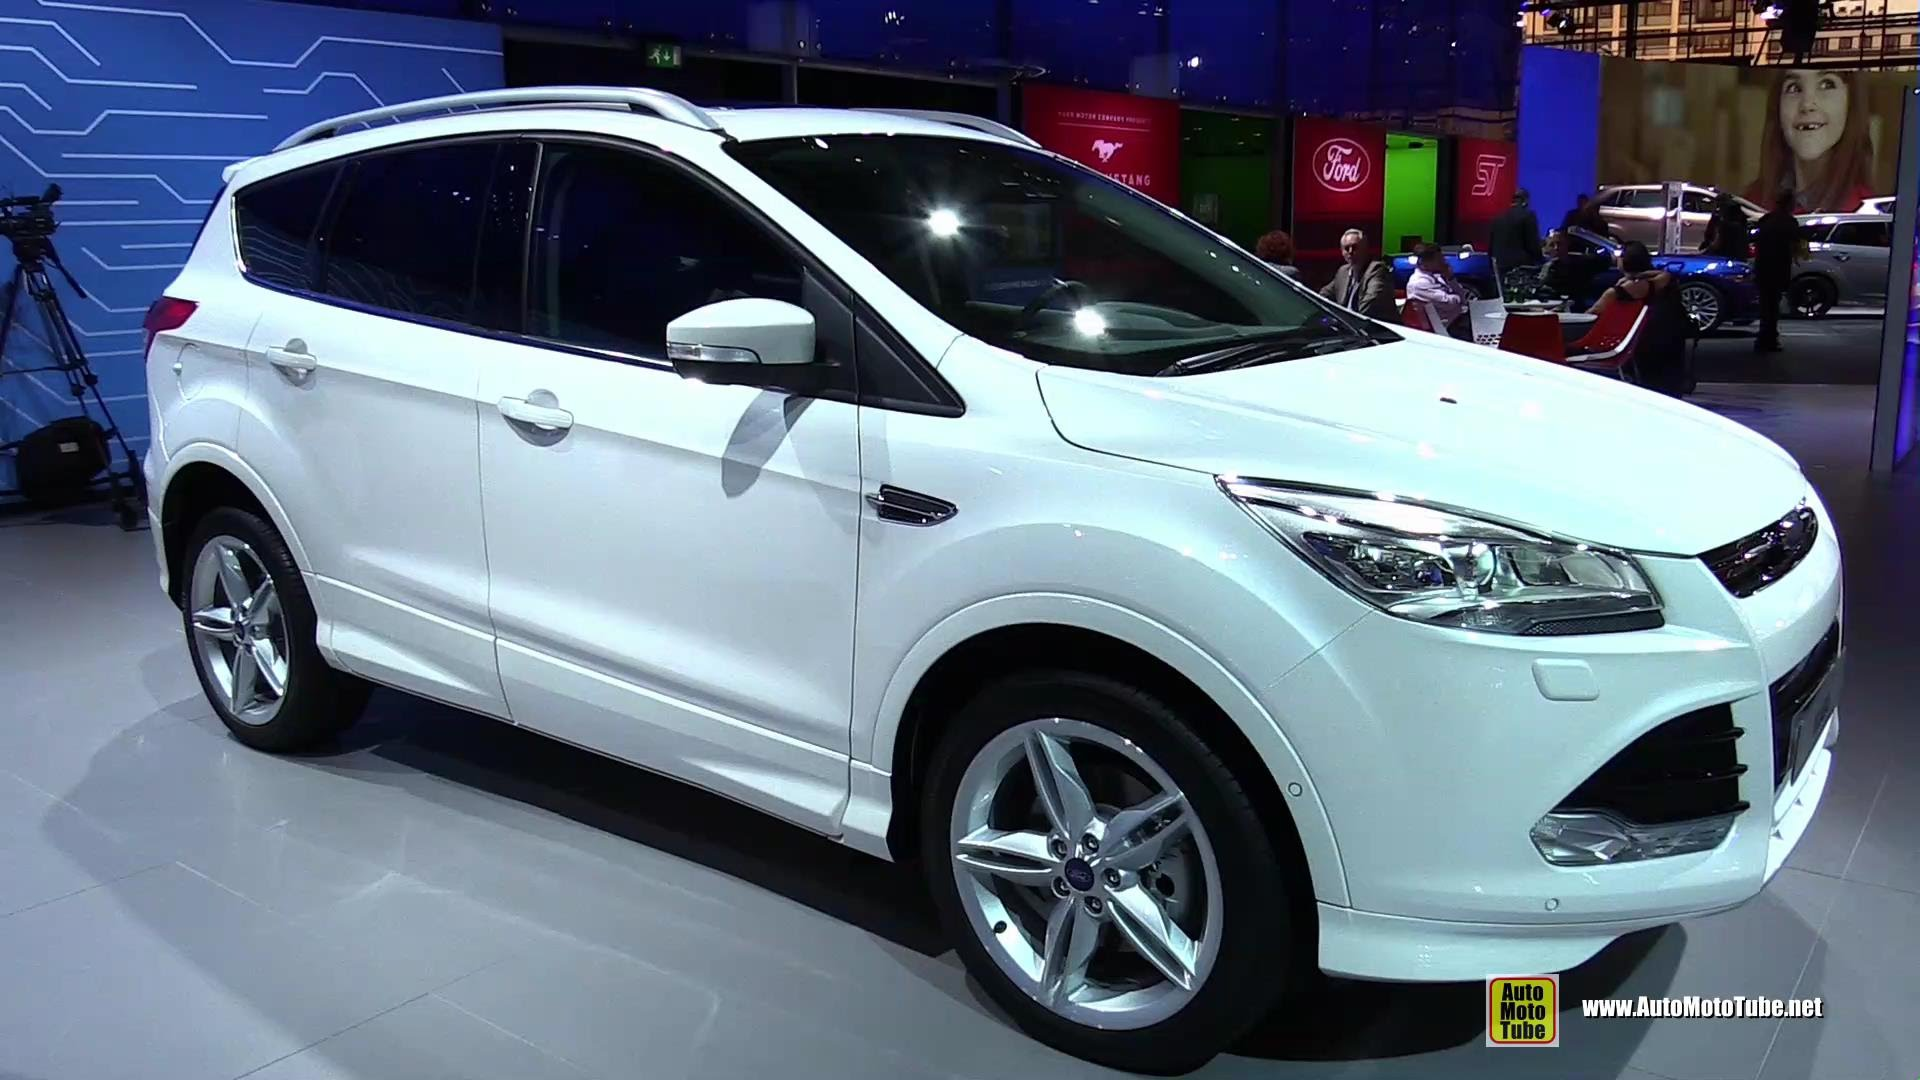 ford kuga wallpaper #3